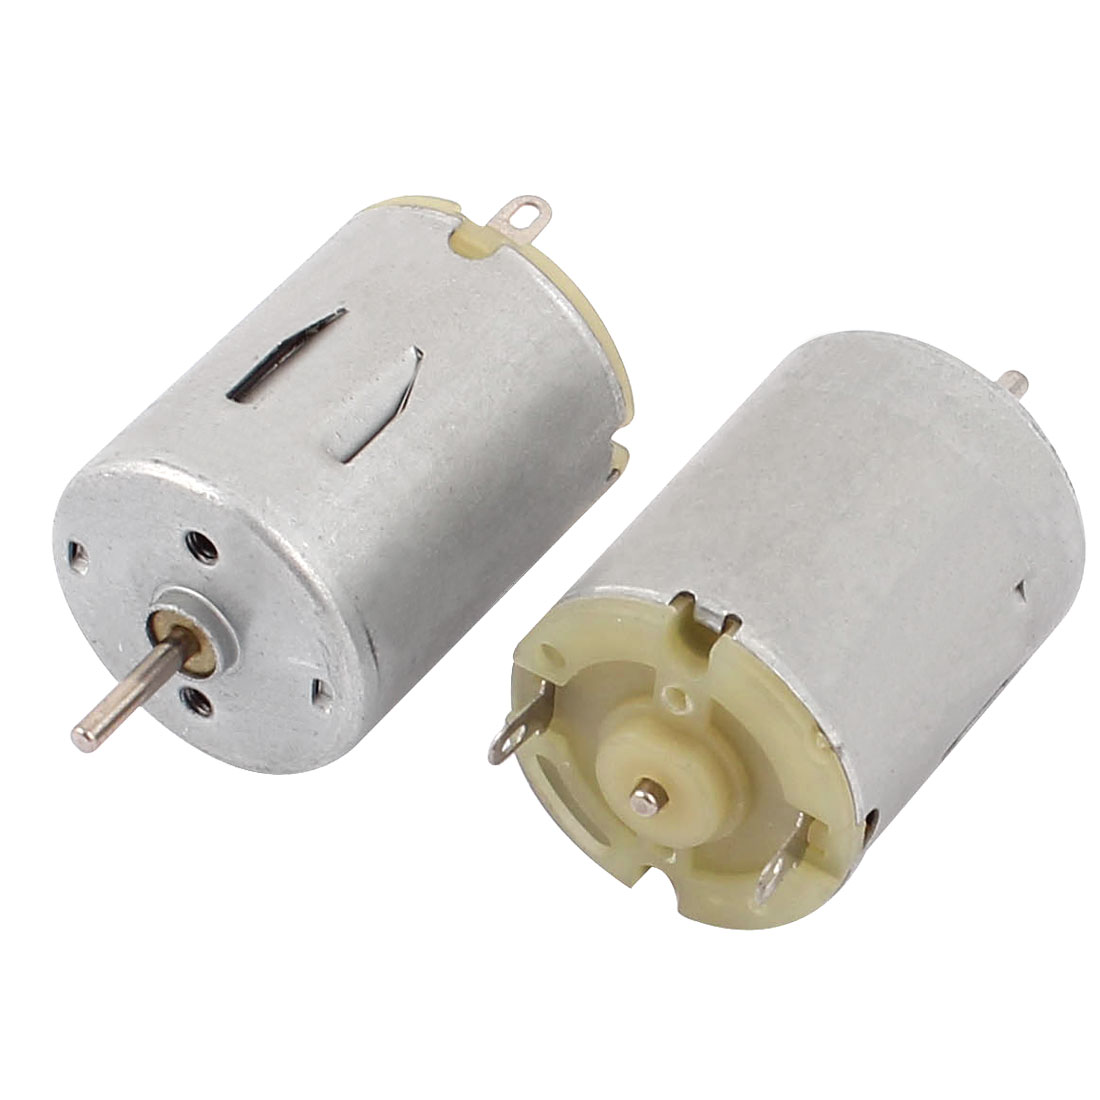 2 Pcs DC 6V 22000RPM 2mm Dia Shaft Electric Micro Motor for RC Helicopter